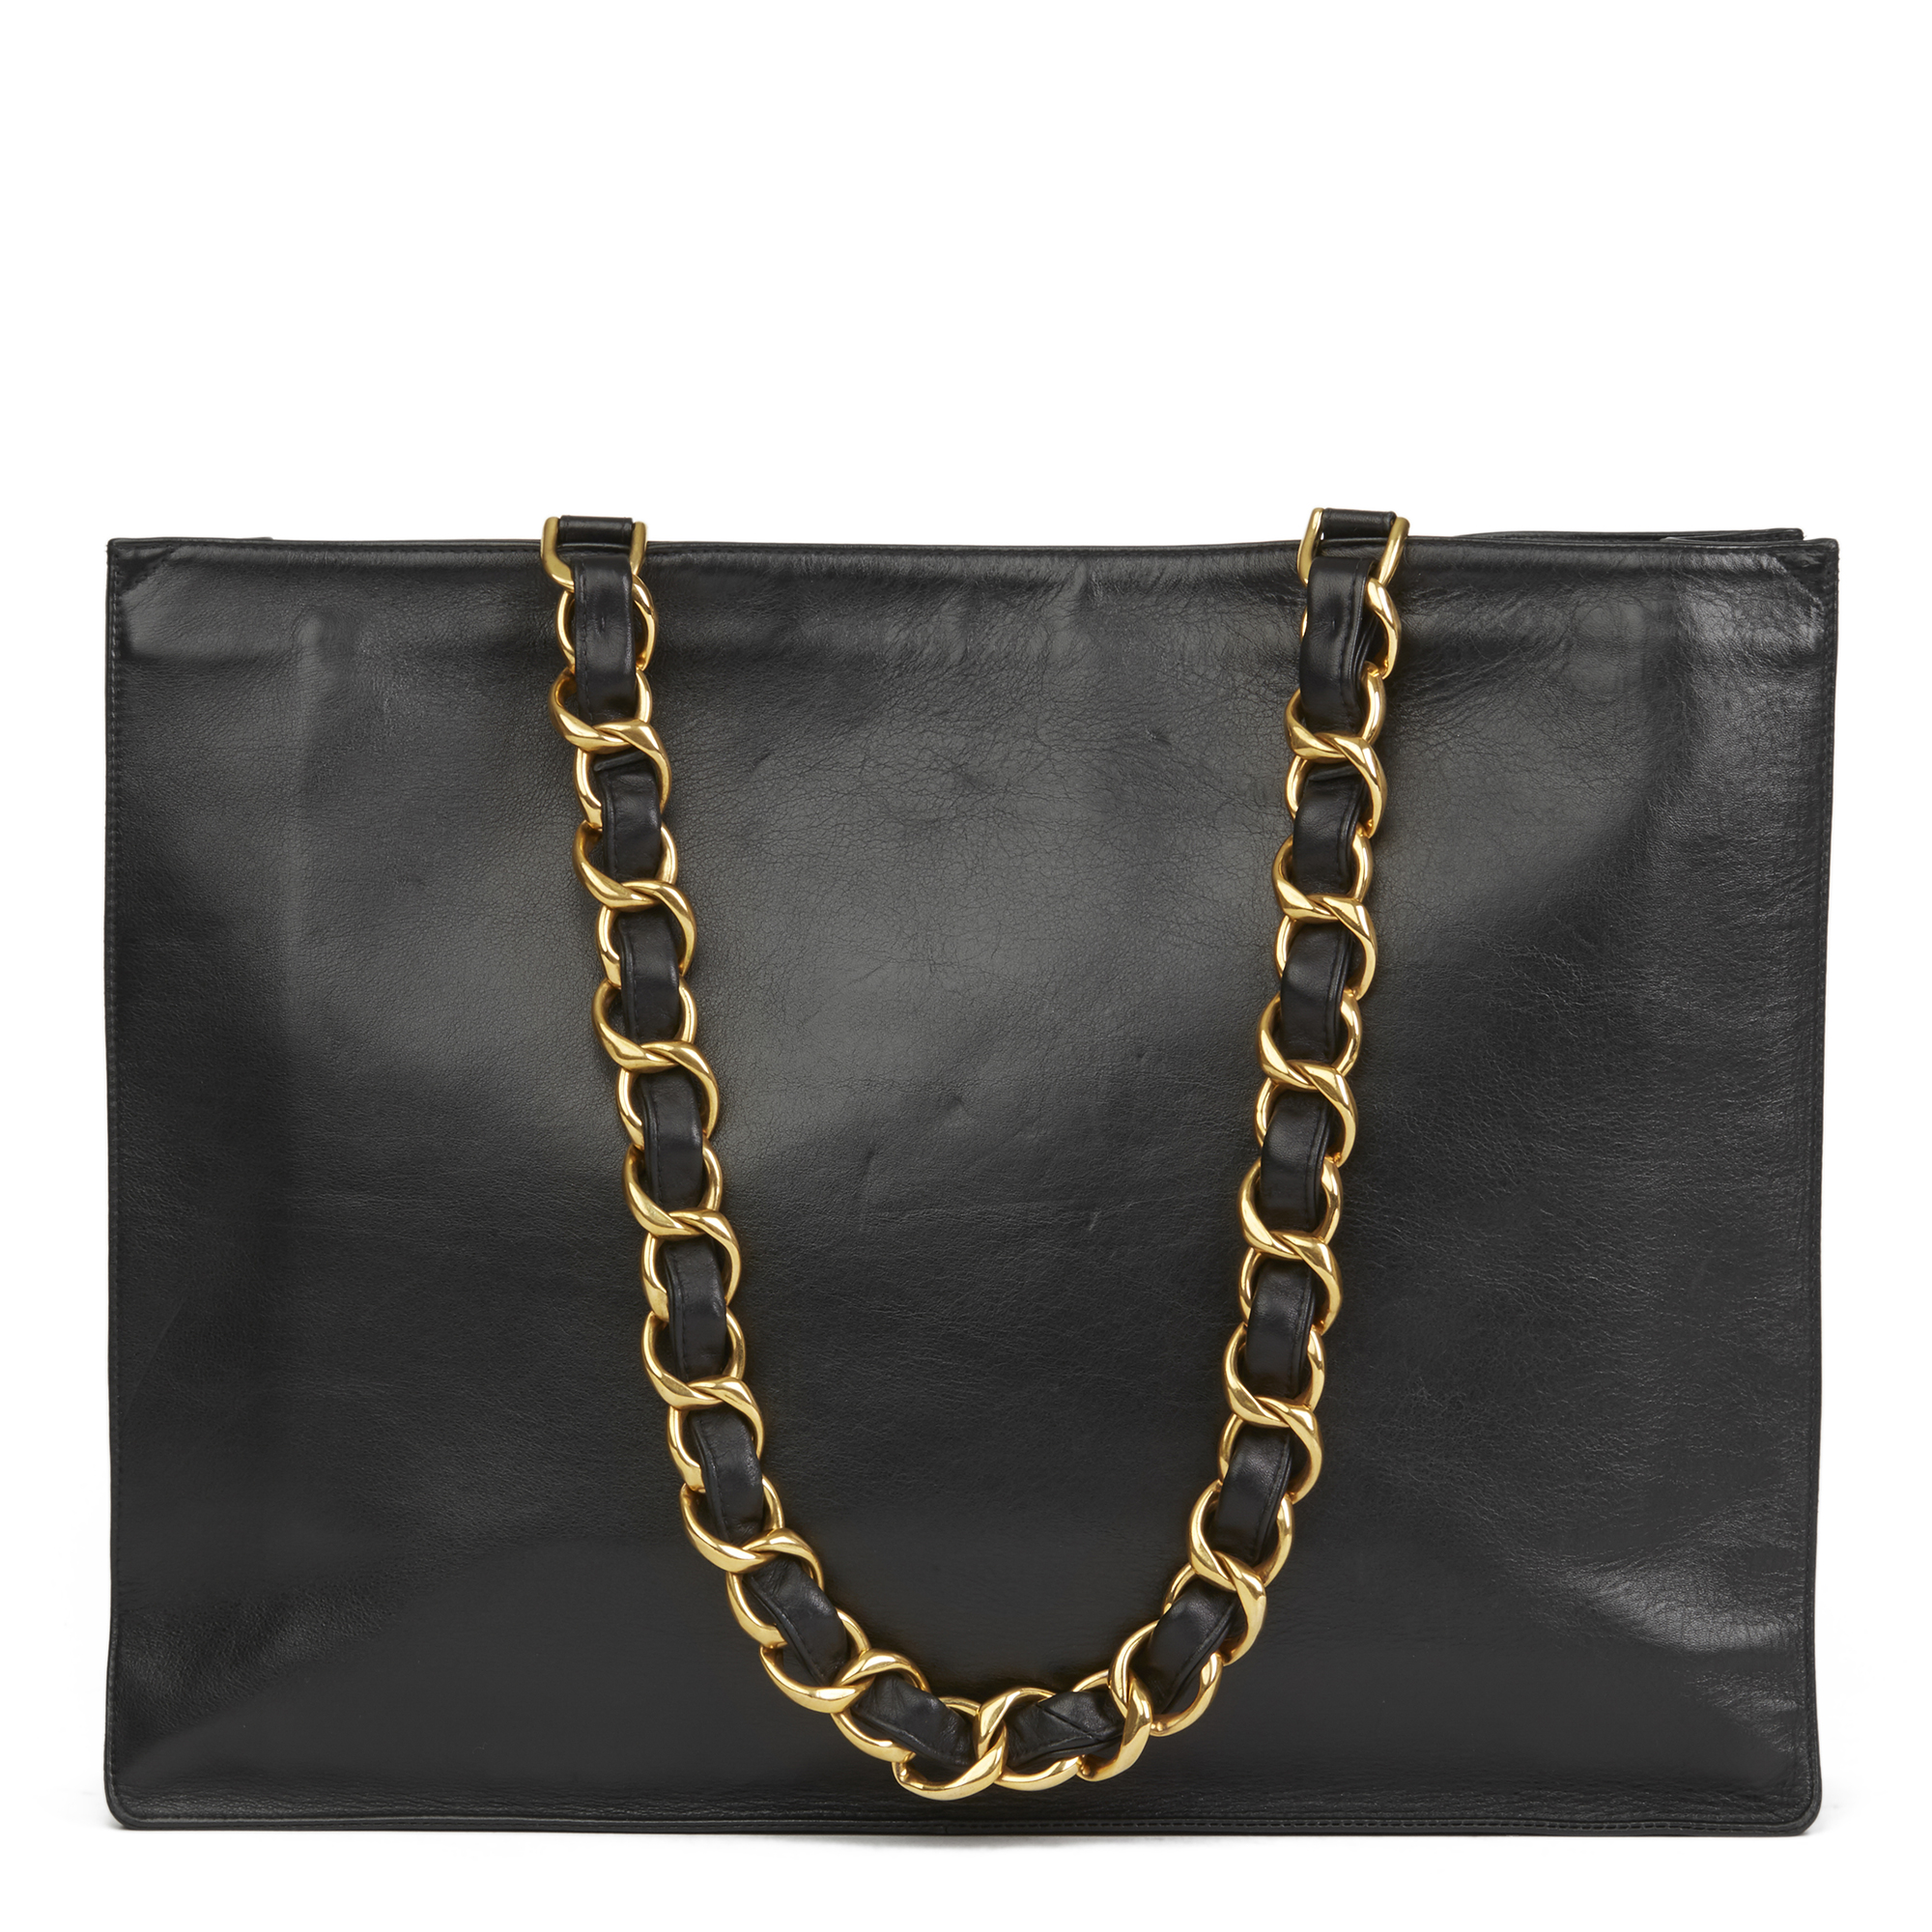 d7fc67039b75b1 Details about CHANEL BLACK LAMBSKIN VINTAGE JUMBO XL TIMELESS SHOPPING TOTE  HB2590